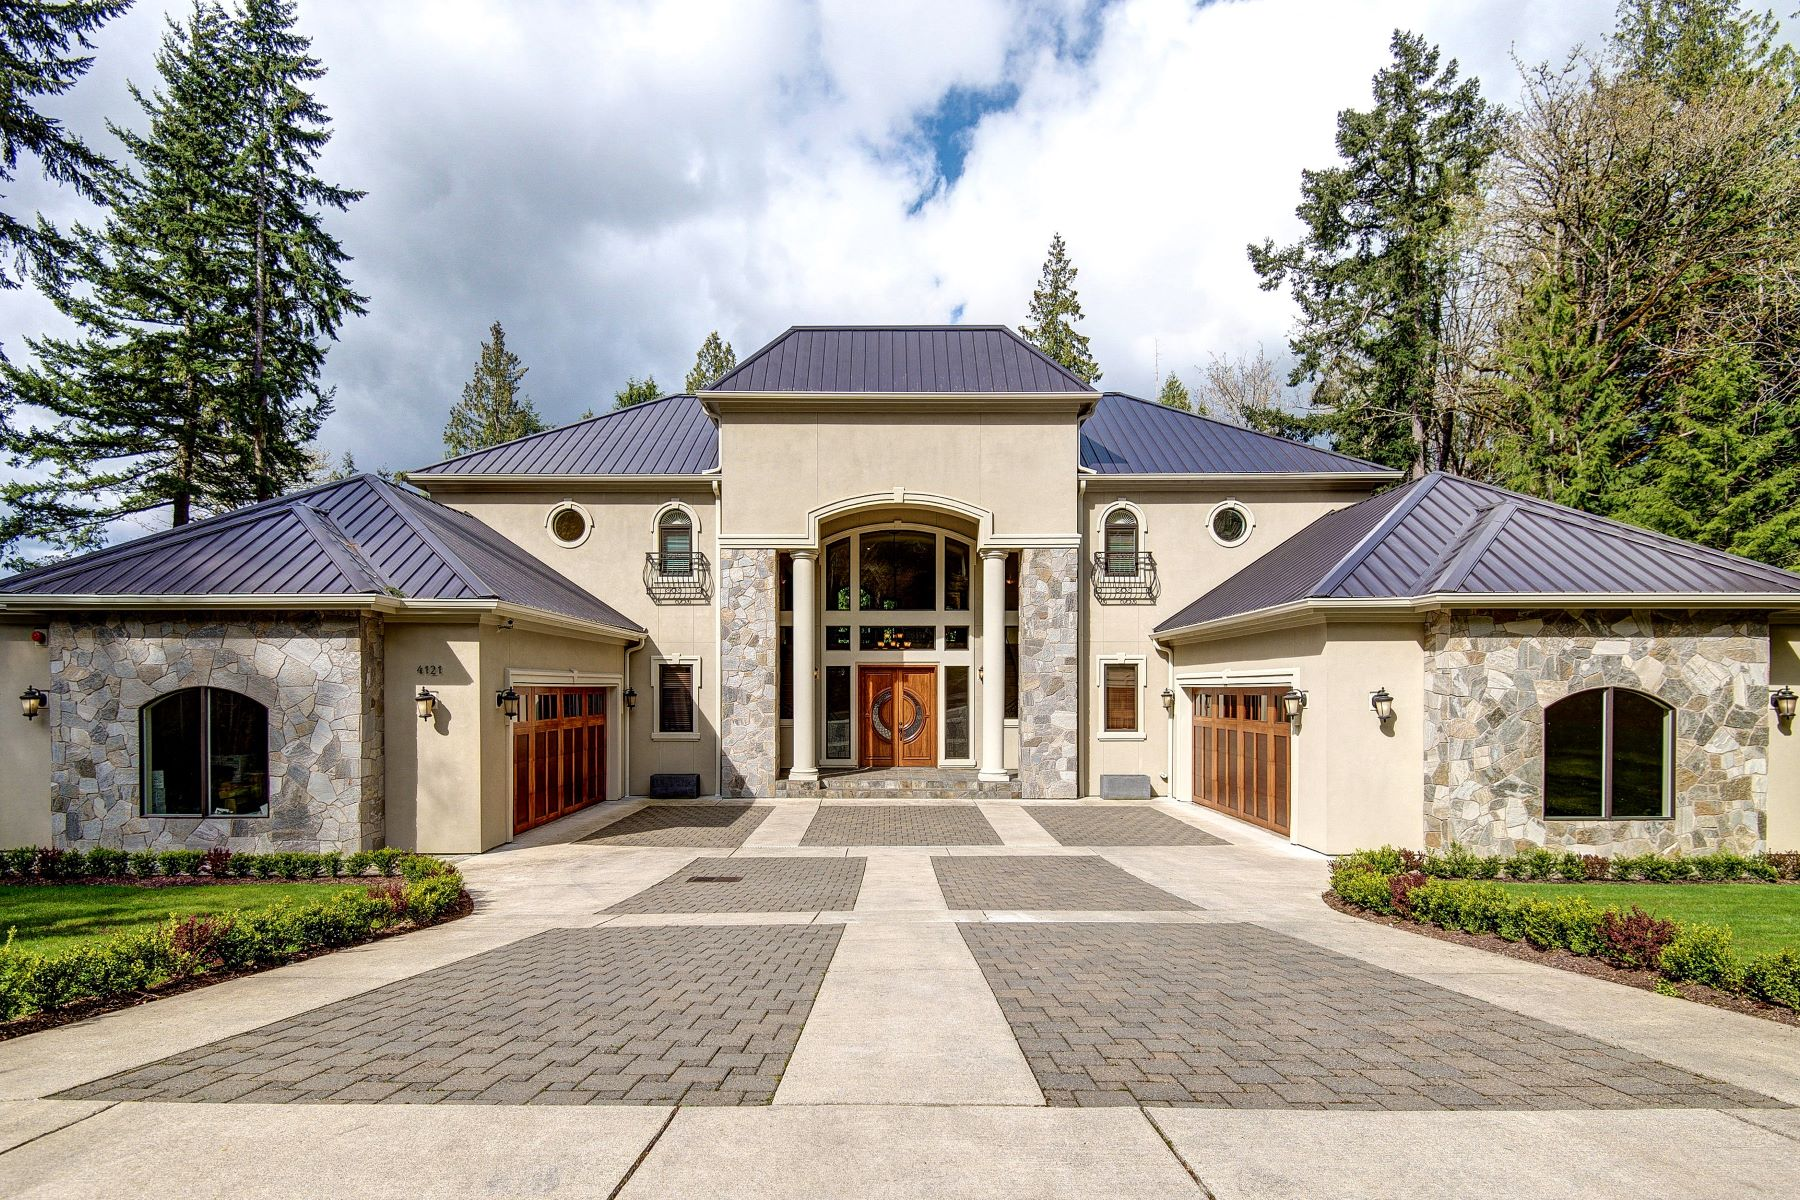 Single Family Home for Sale at Sammamish Chateau 4121 198th Ct Ne Sammamish, Washington, 98074 United States